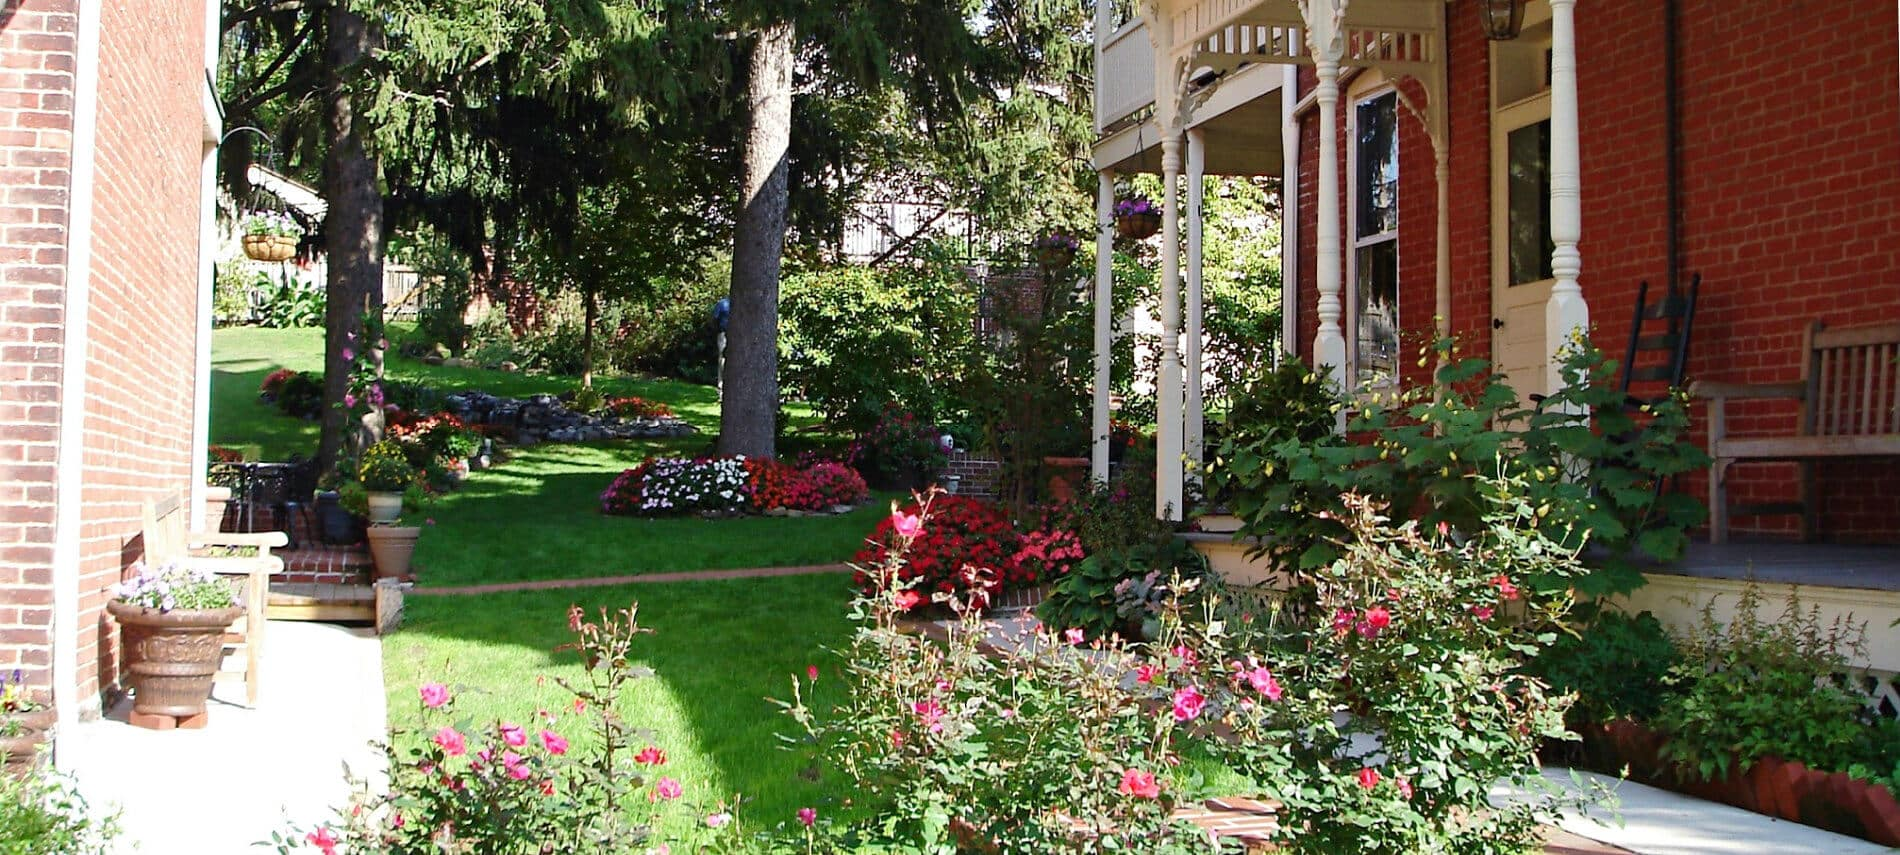 Brickhouse Inn side yard covered with green grass, colorful flowers and shade trees